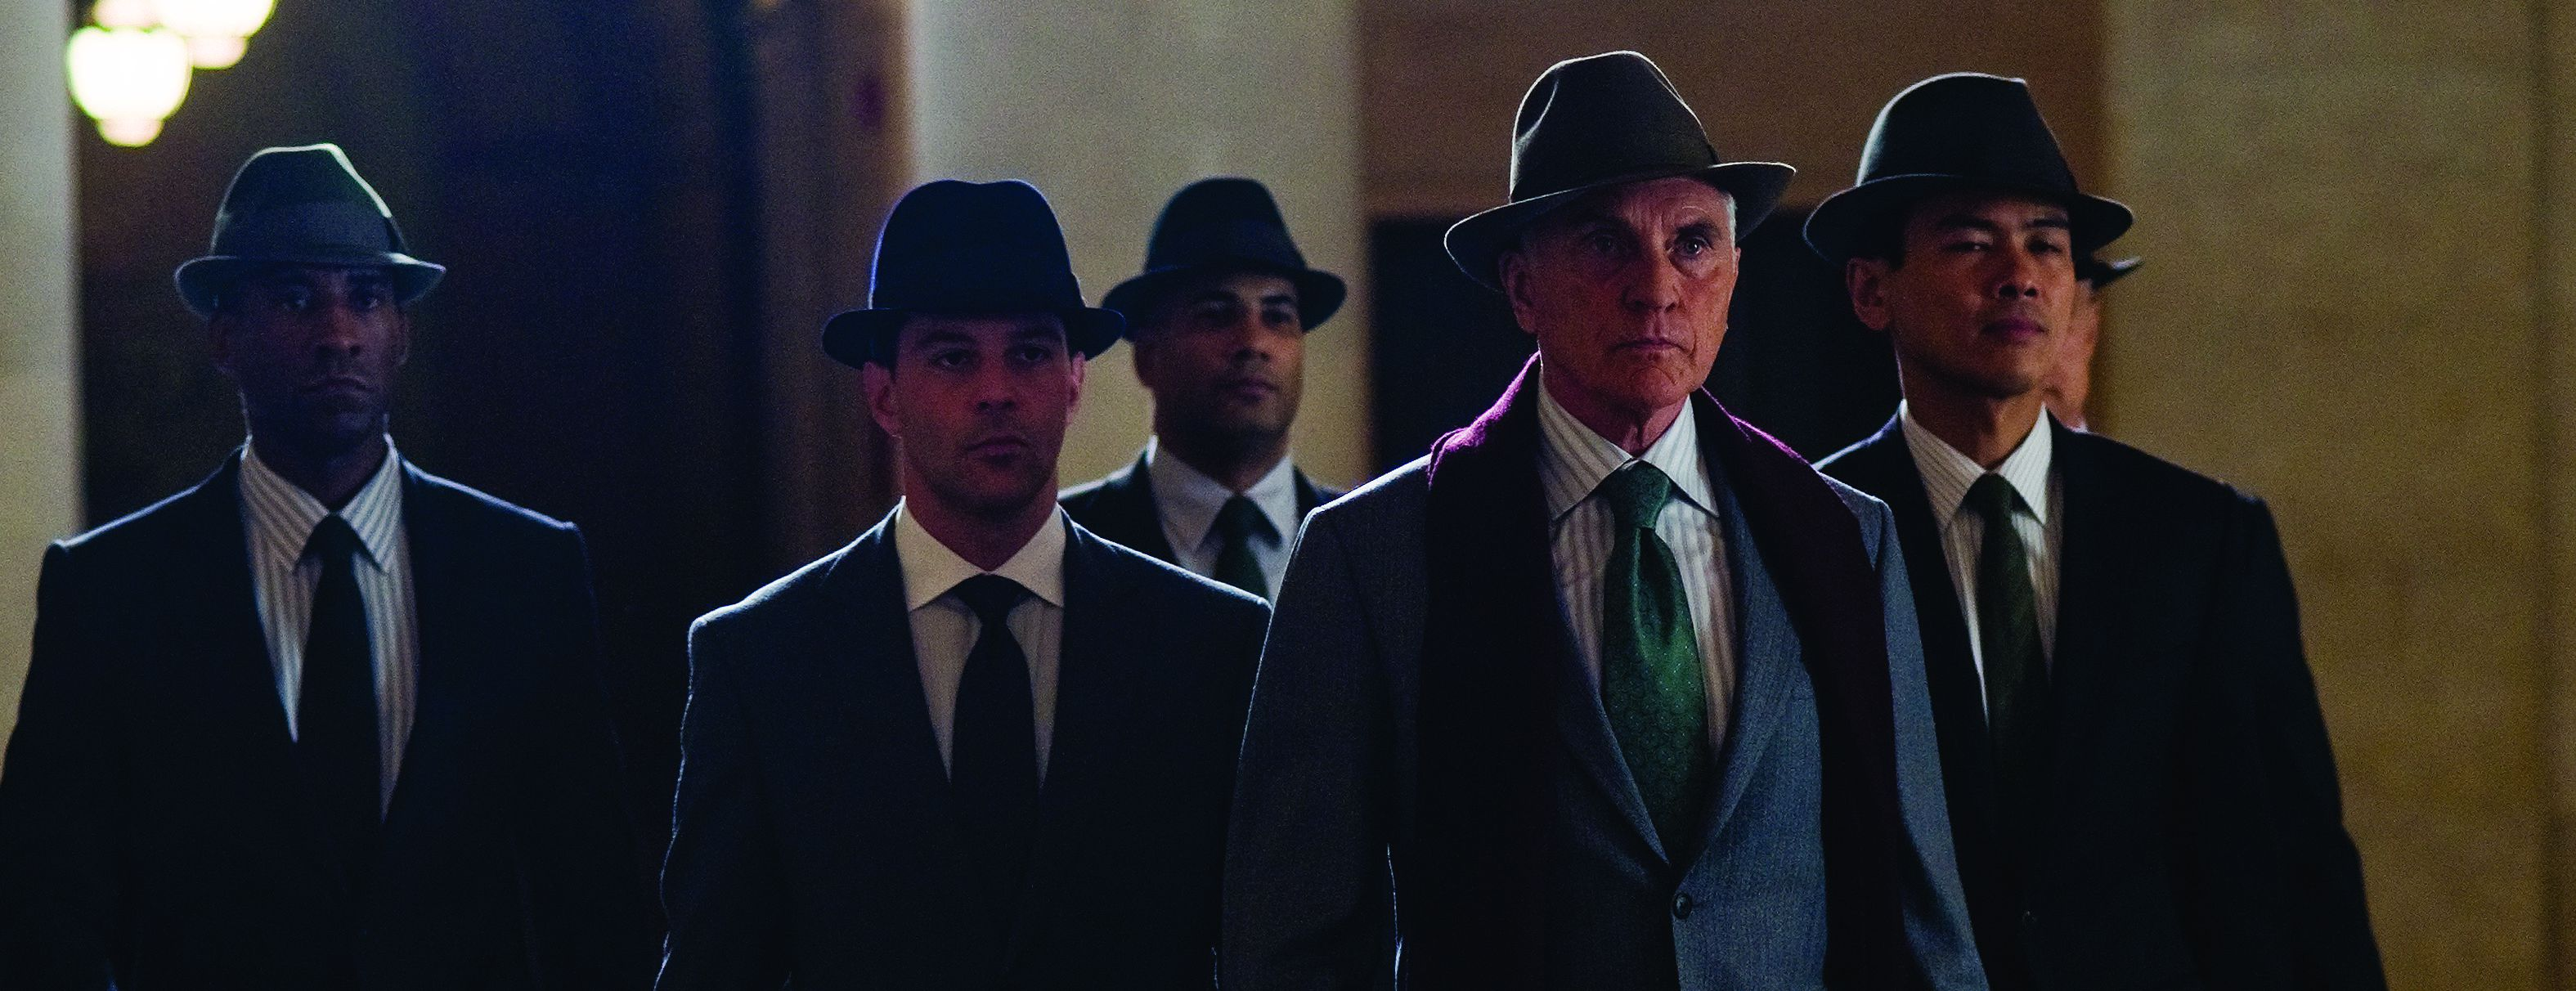 An image from The Adjustment Bureau